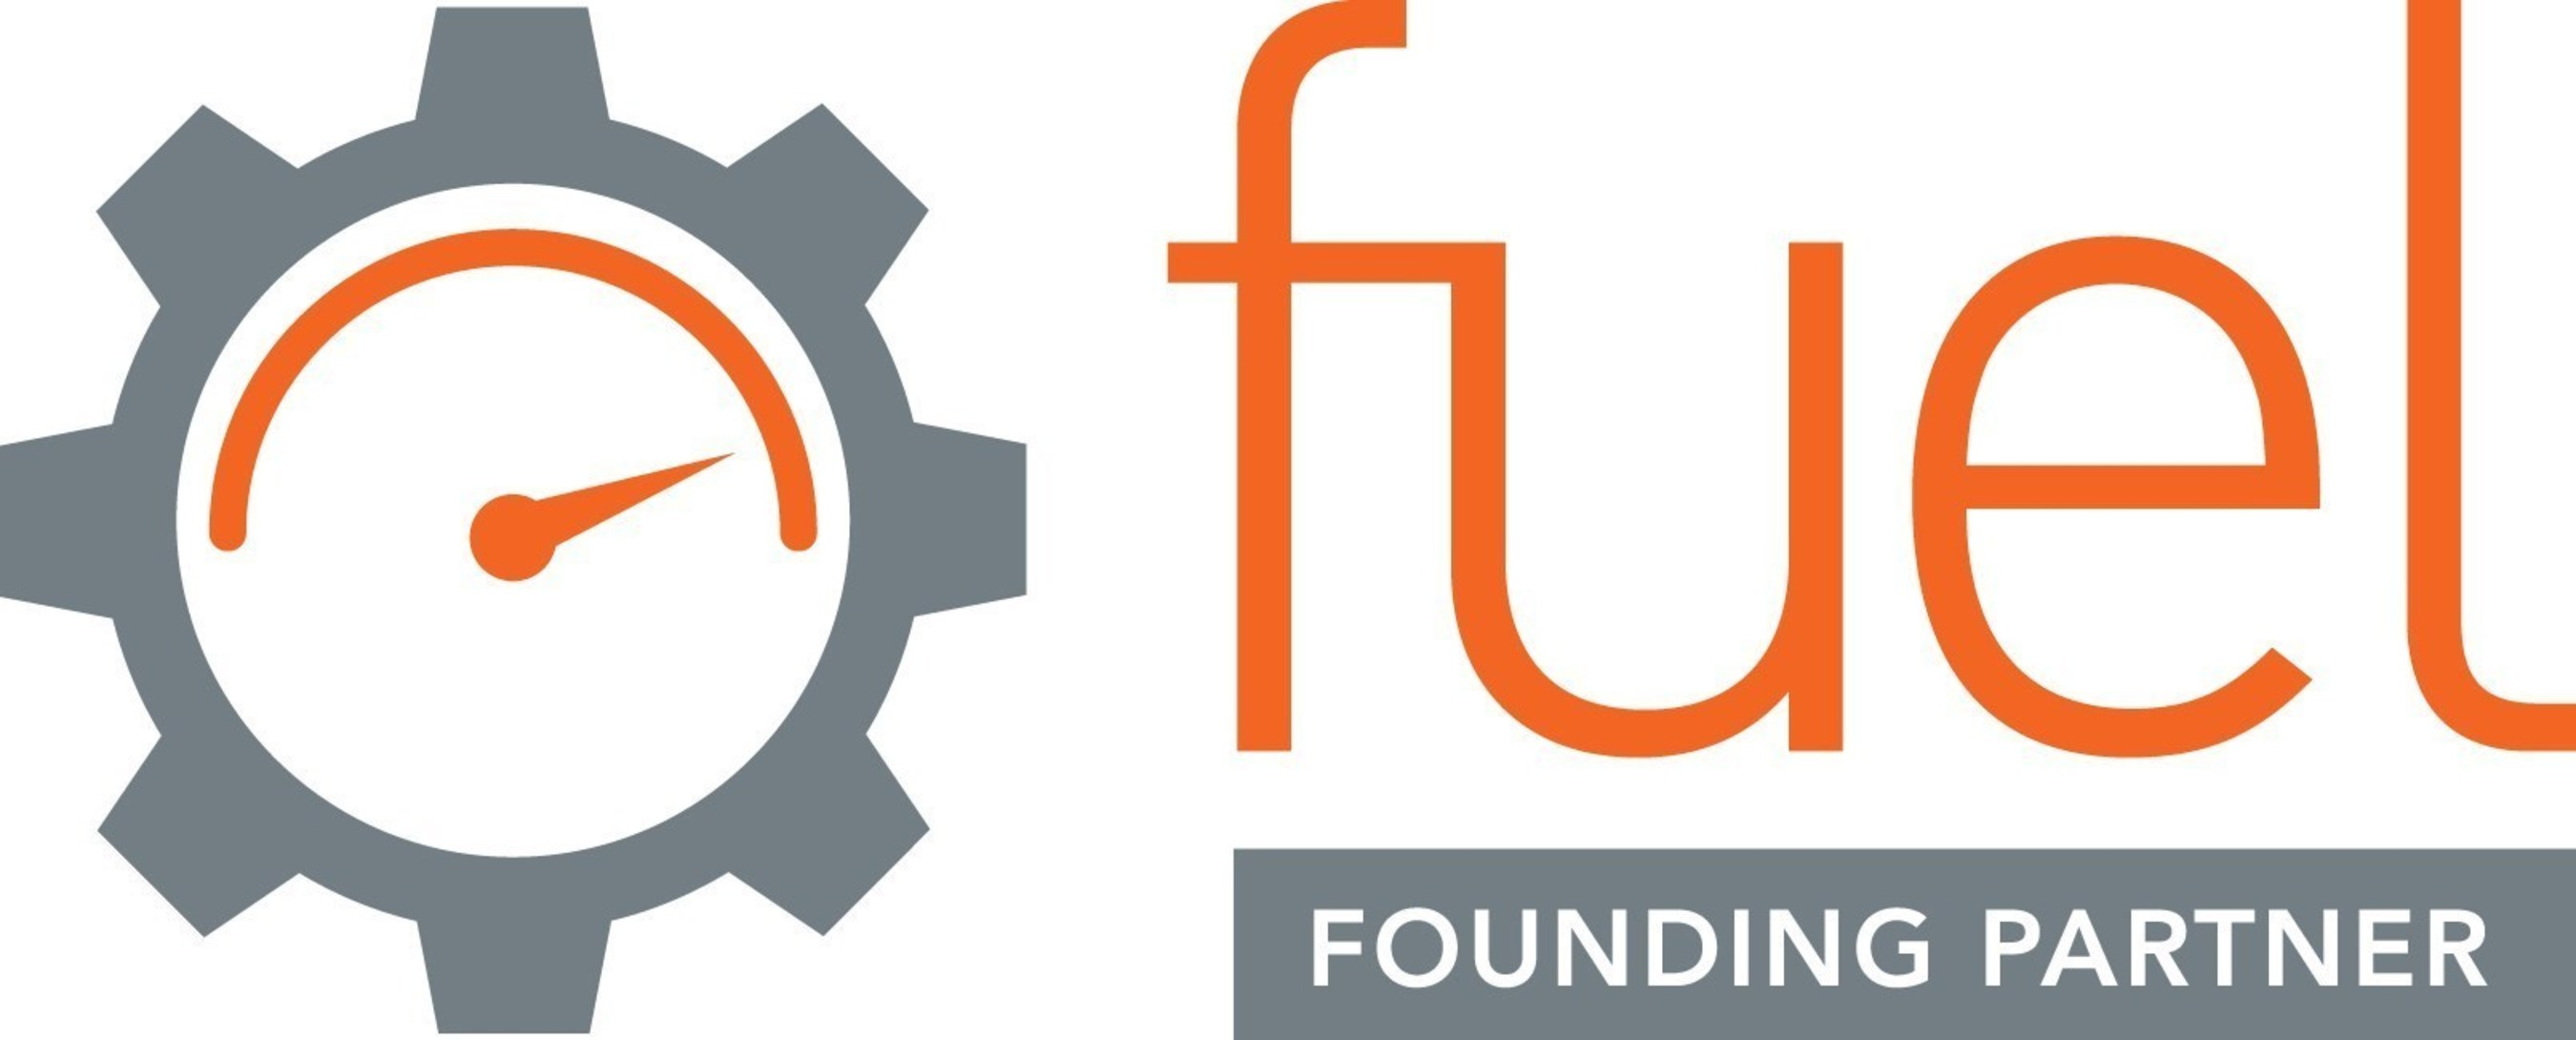 Garland Technology becomes Founding Partner for Palo Alto Networks User Group 'Fuel'